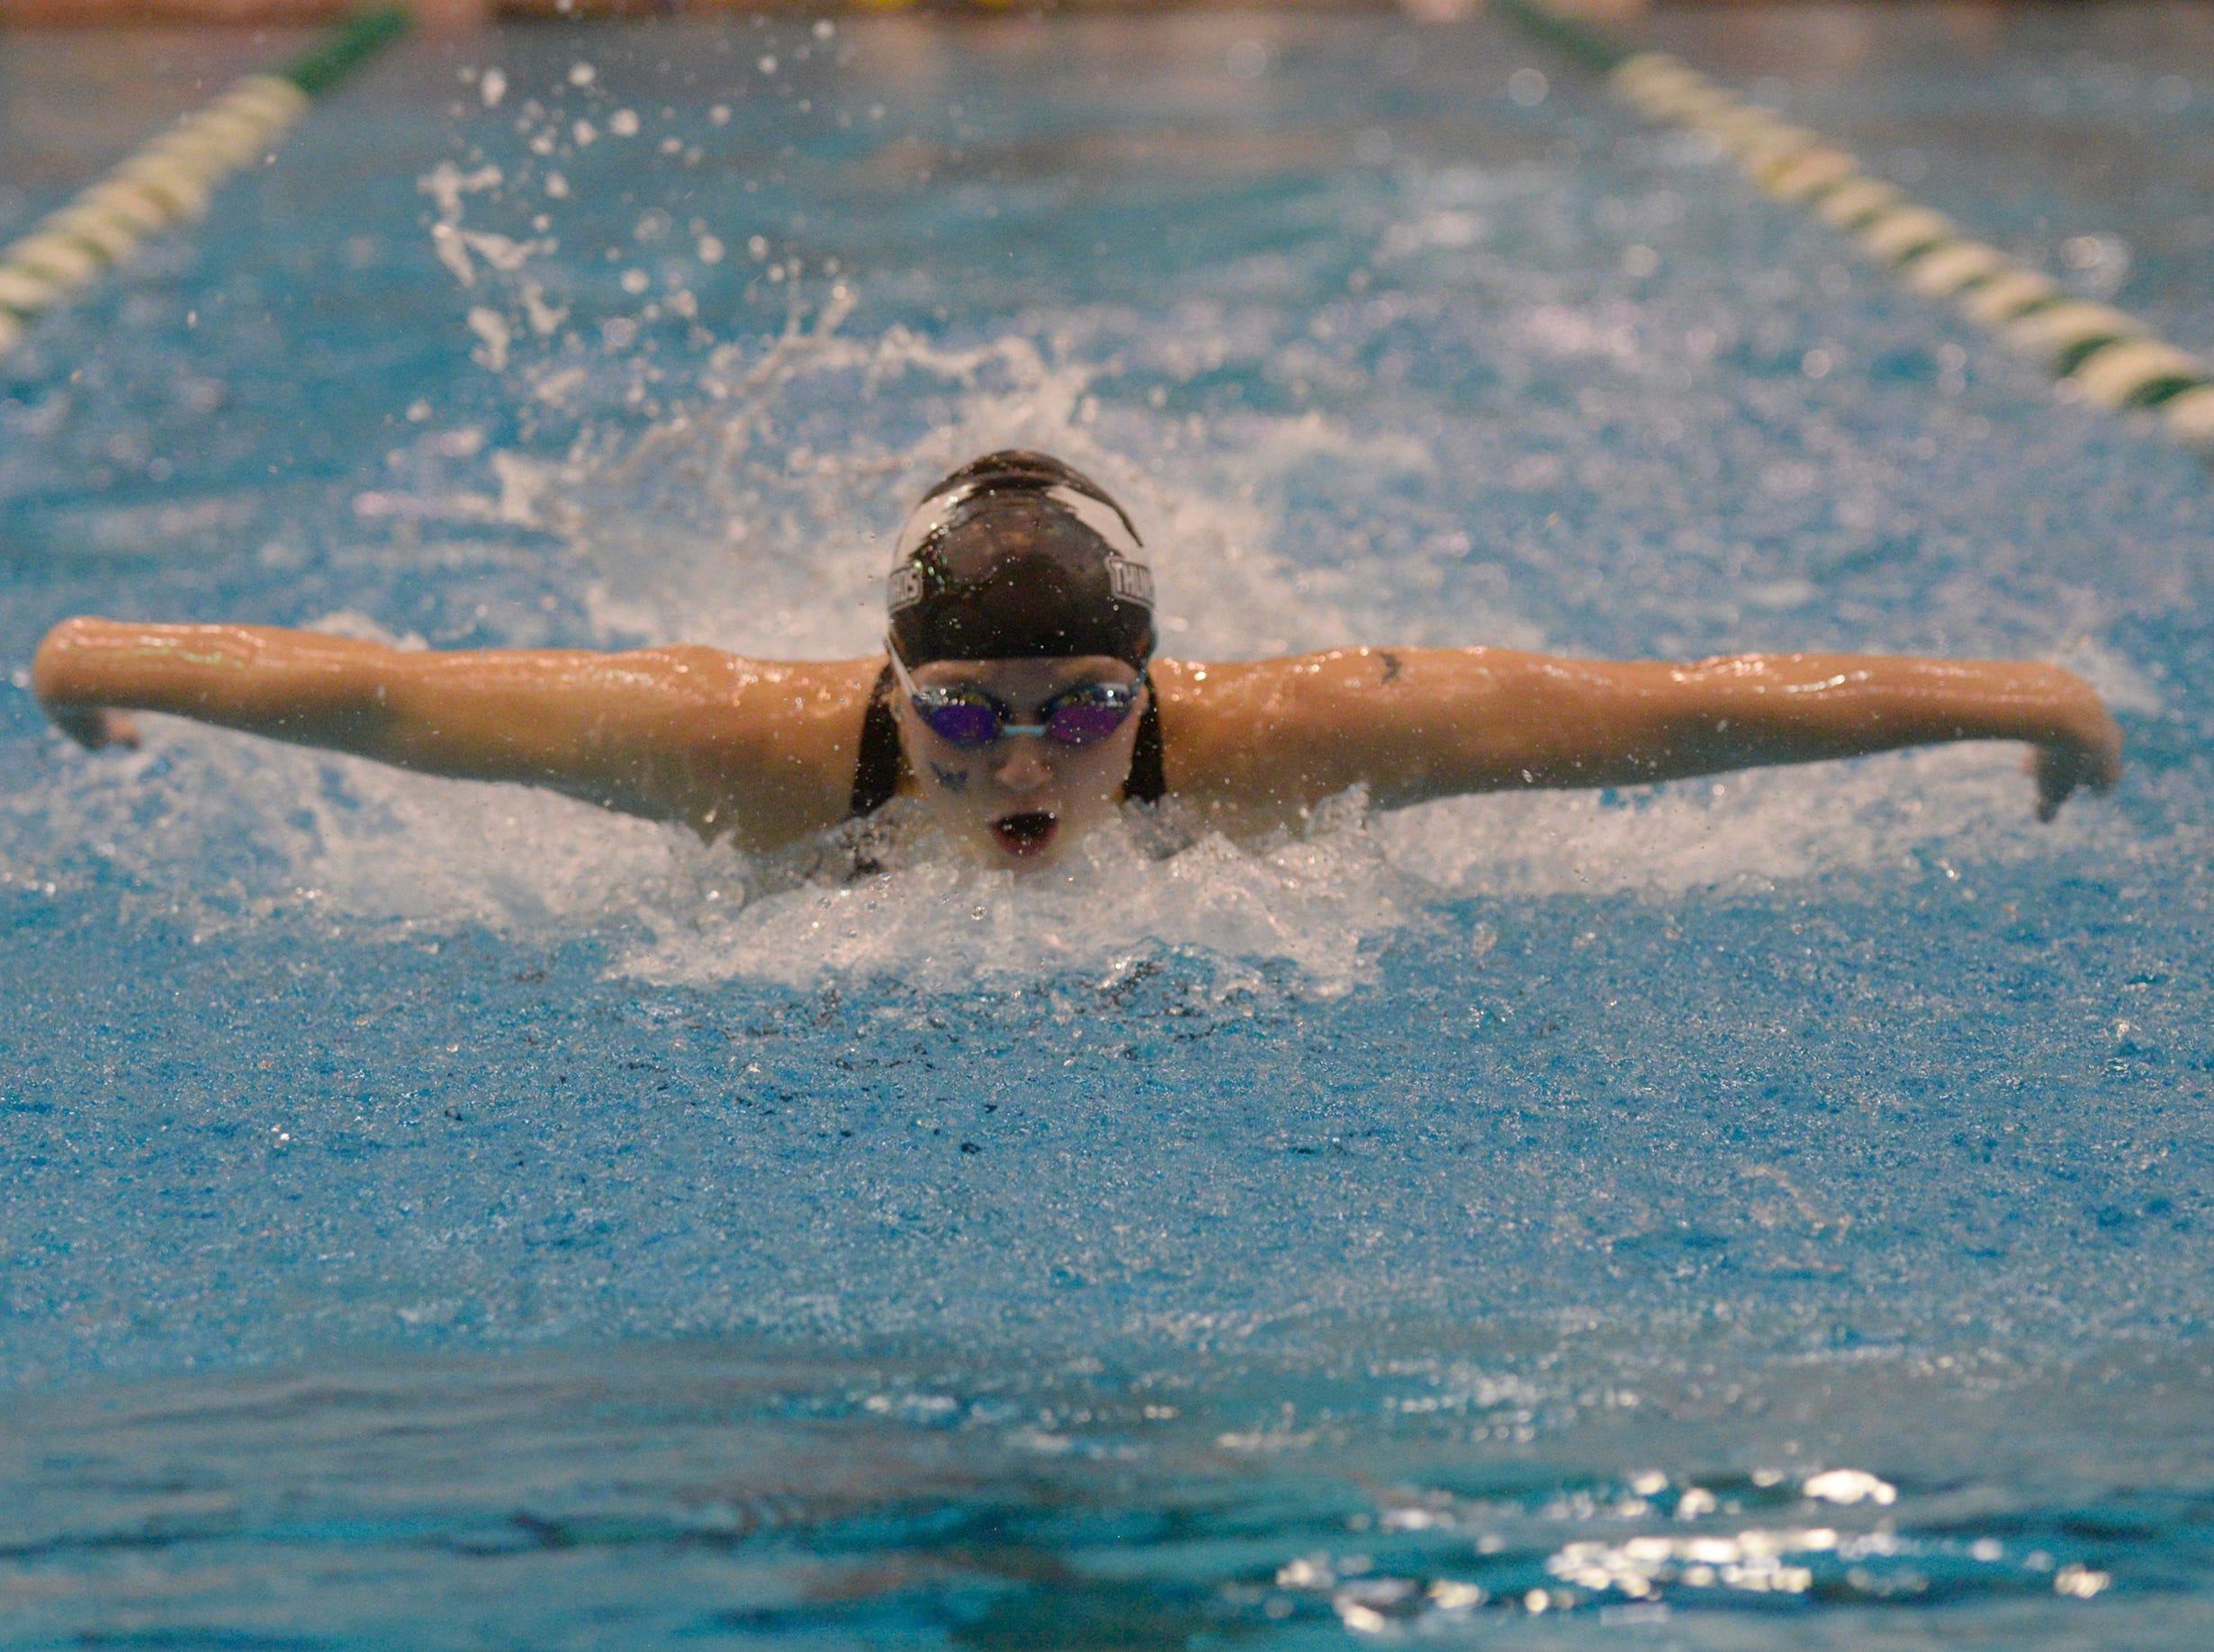 Harrison/Farmington's Madeline Greaves in the 100 yard butterfly at the Division 1 girls swimming and diving championships held at Eastern Michigan University Nov. 17, 2018.